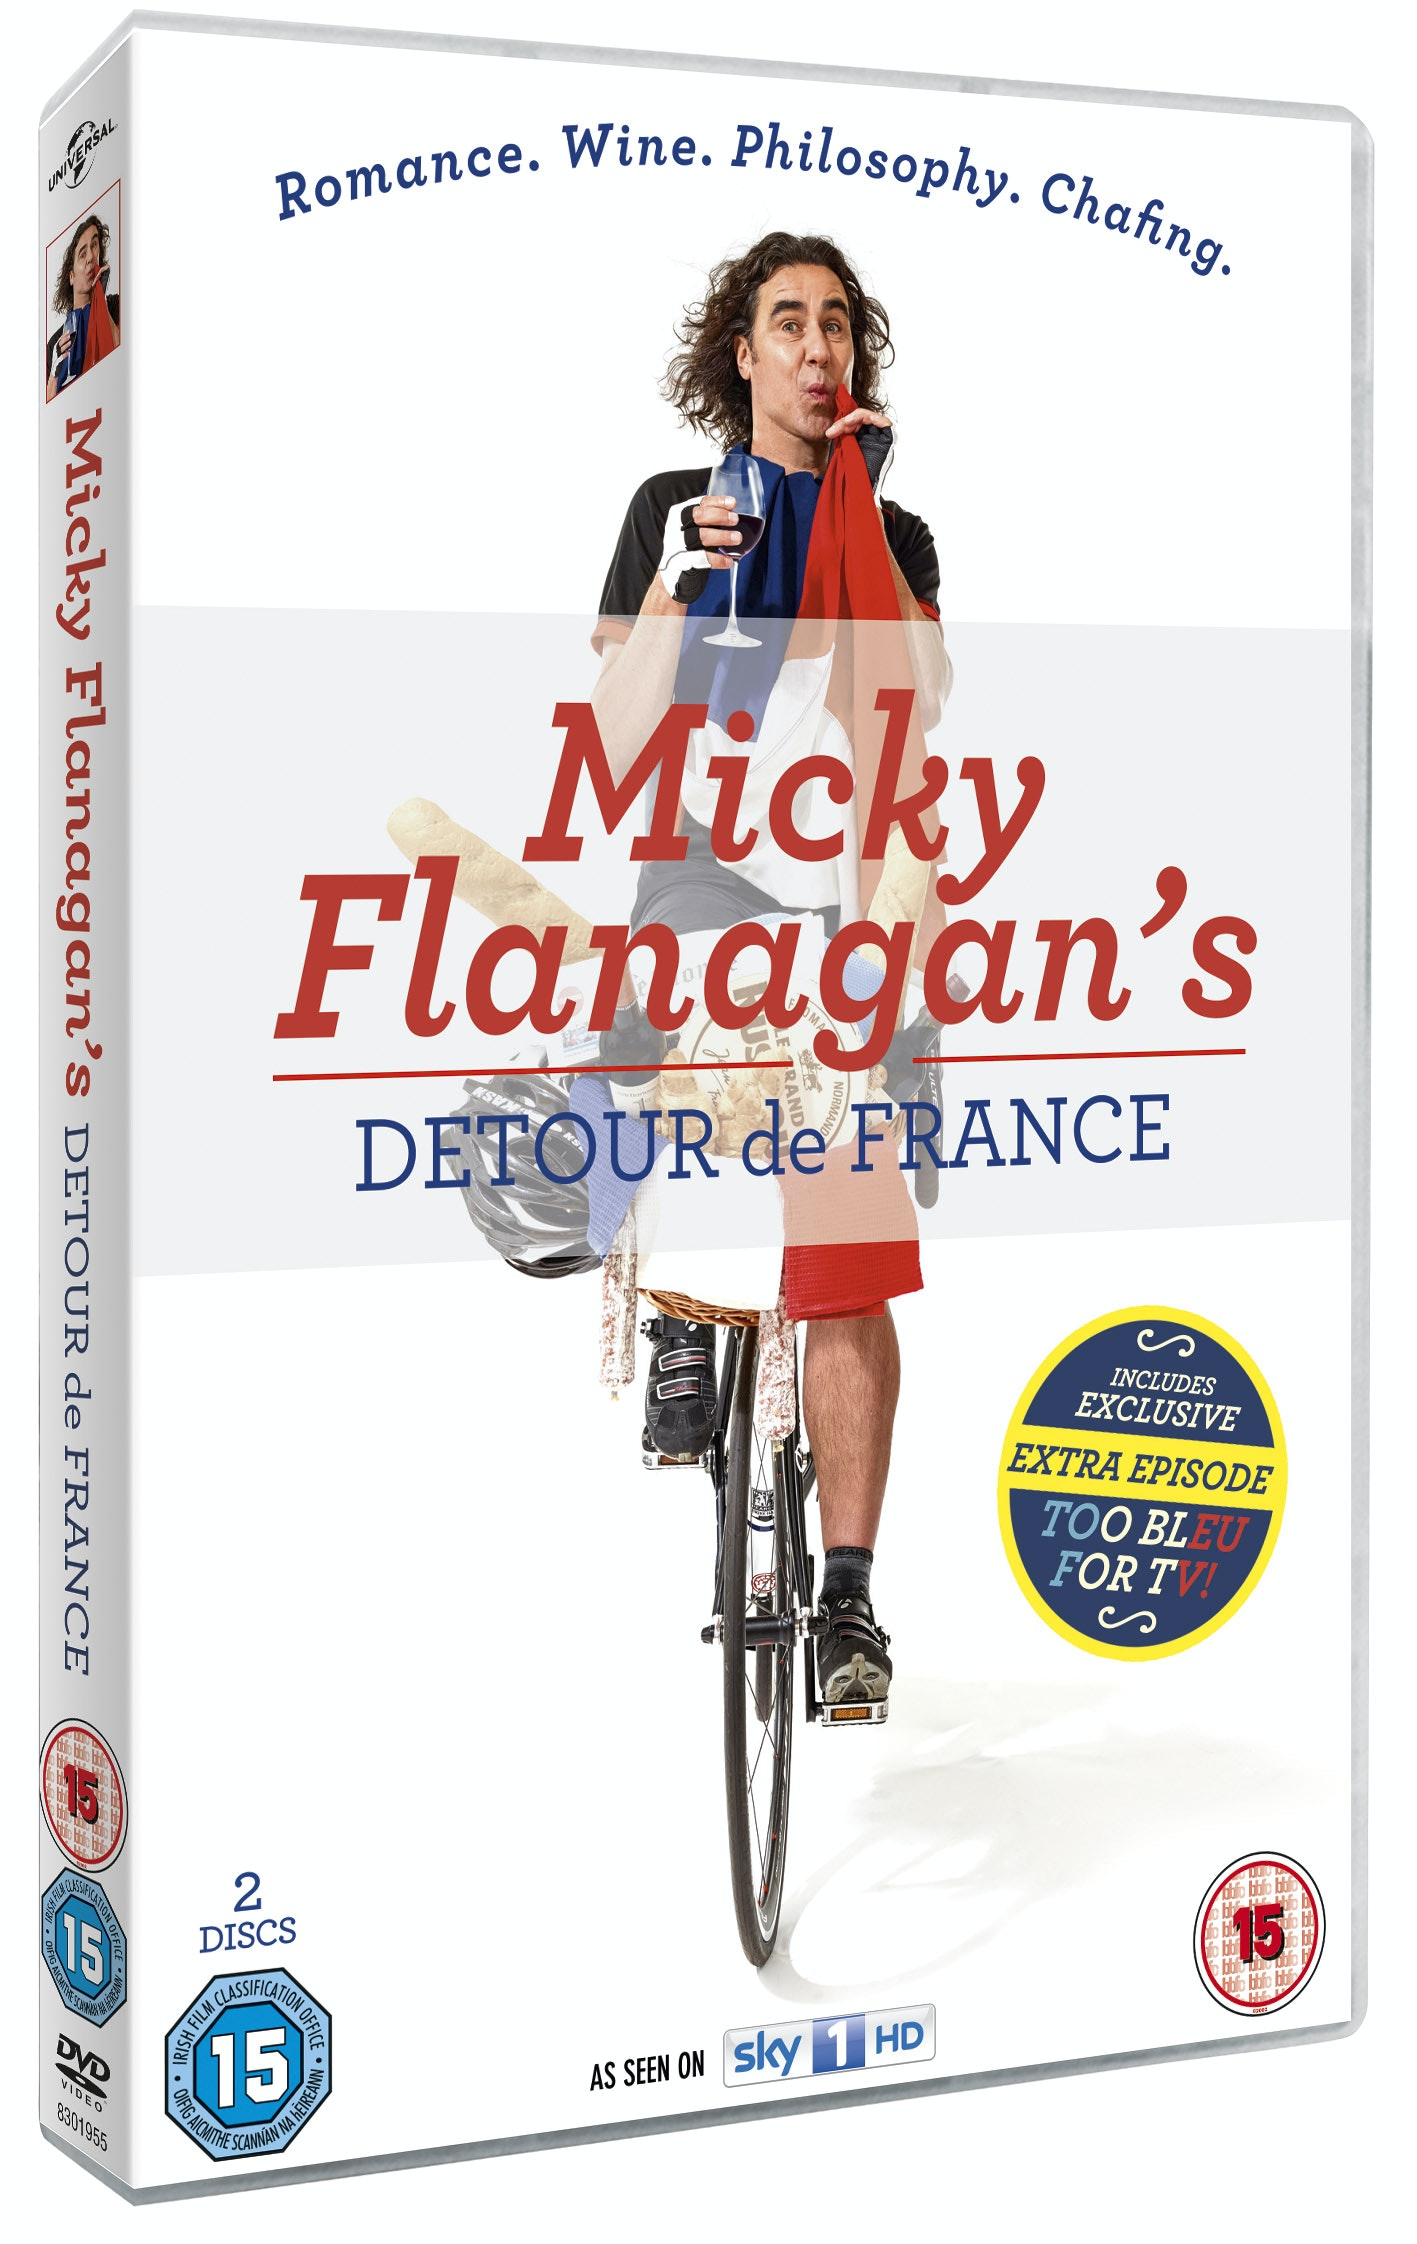 Micky Flanagan's Detour De France sweepstakes